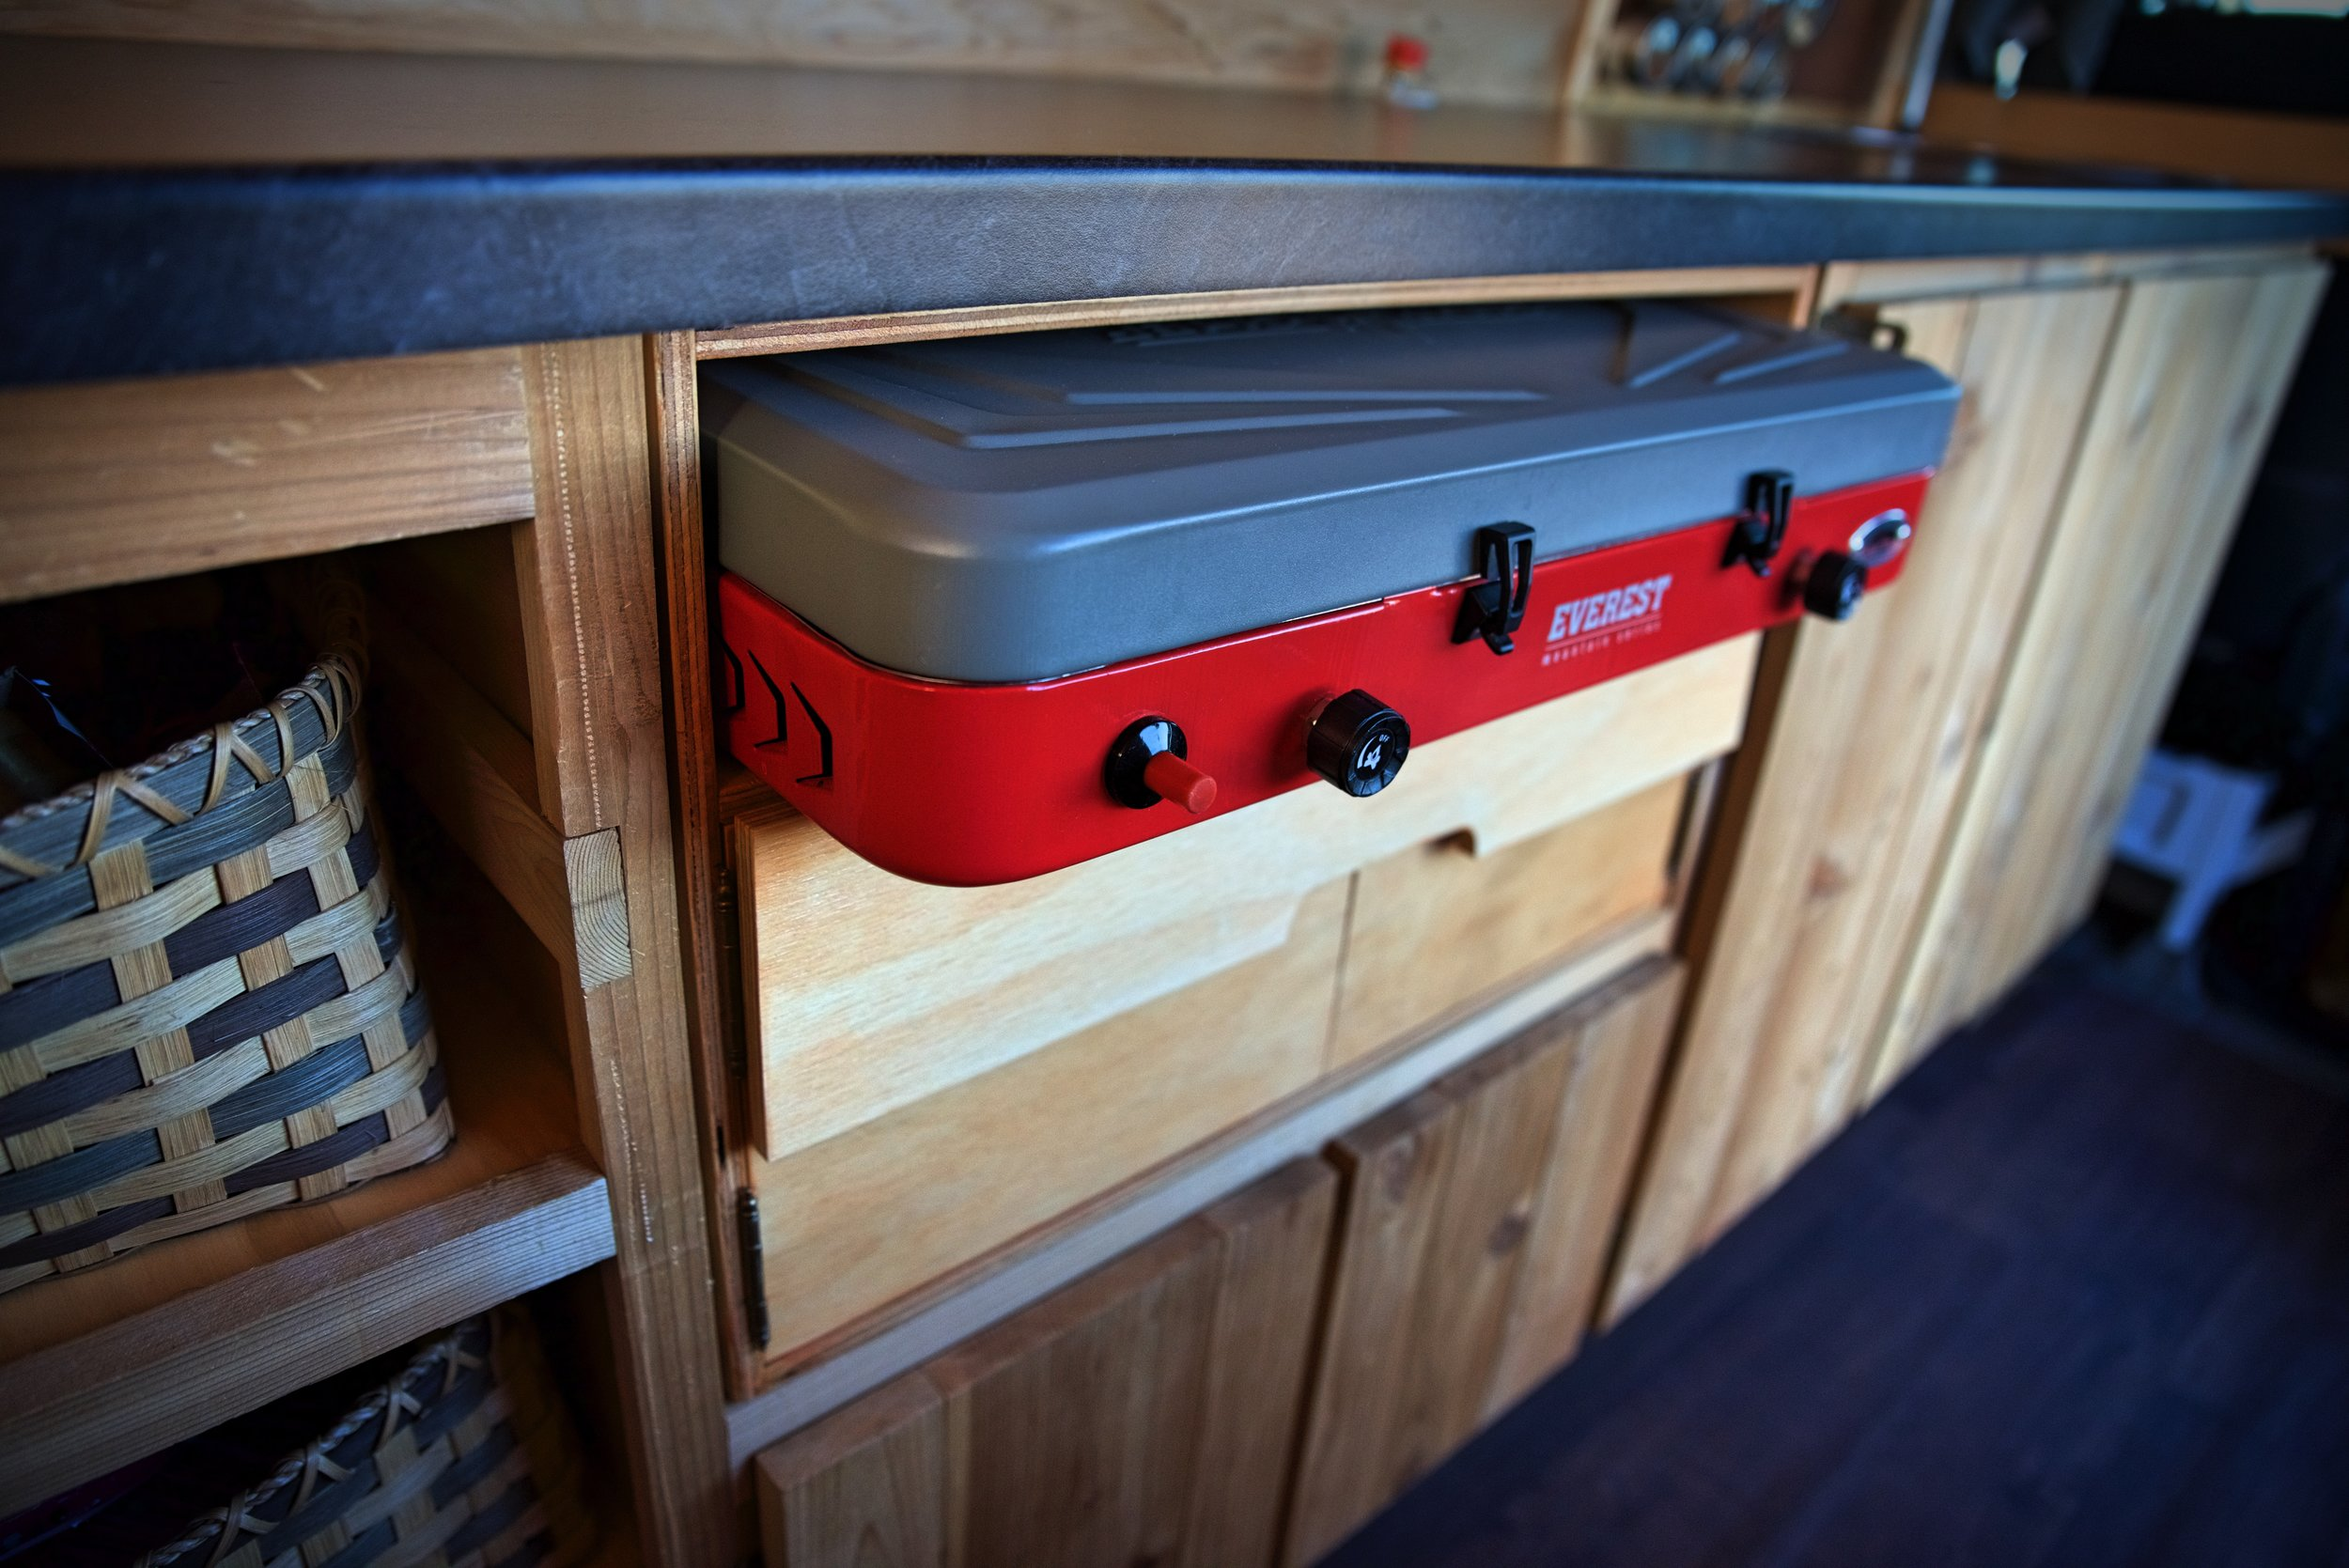 The top compartment of the chuck box is for storing our stove, and we built it to the precise dimensions of this stove.